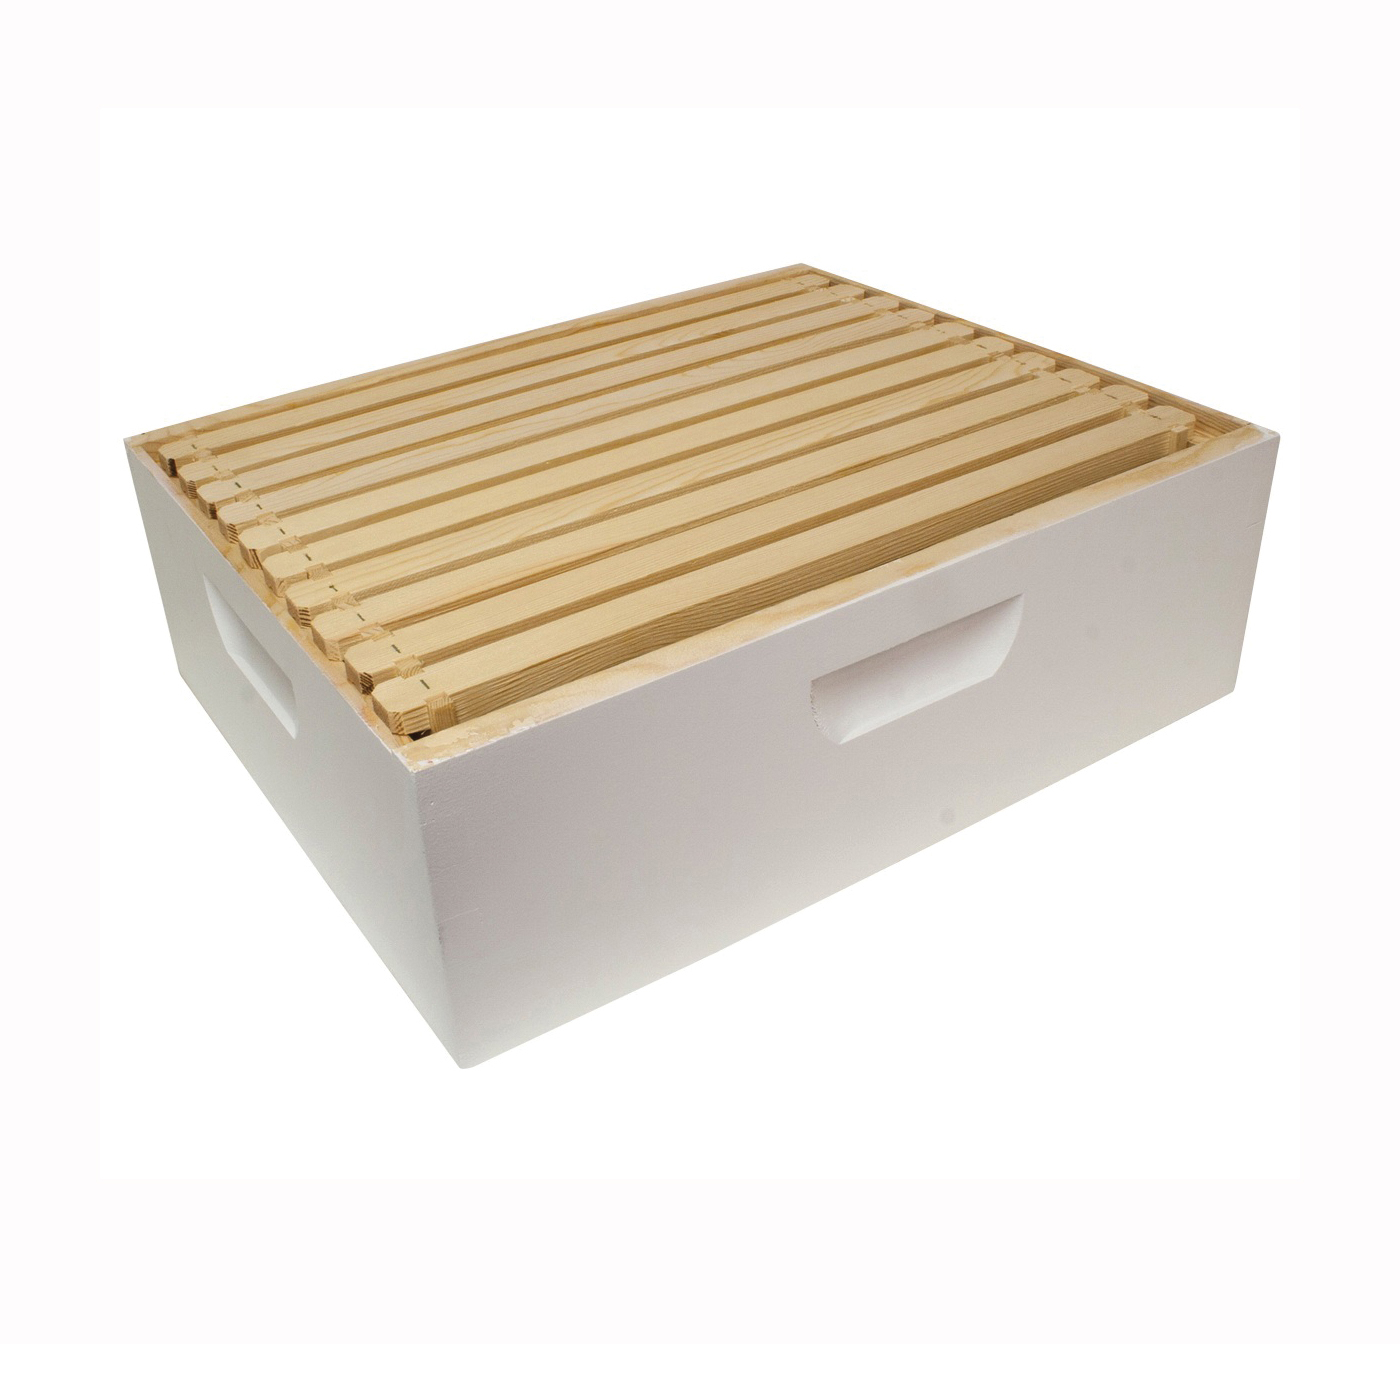 Picture of HARVEST LANE HONEY WWBCM-102 Beehive Box